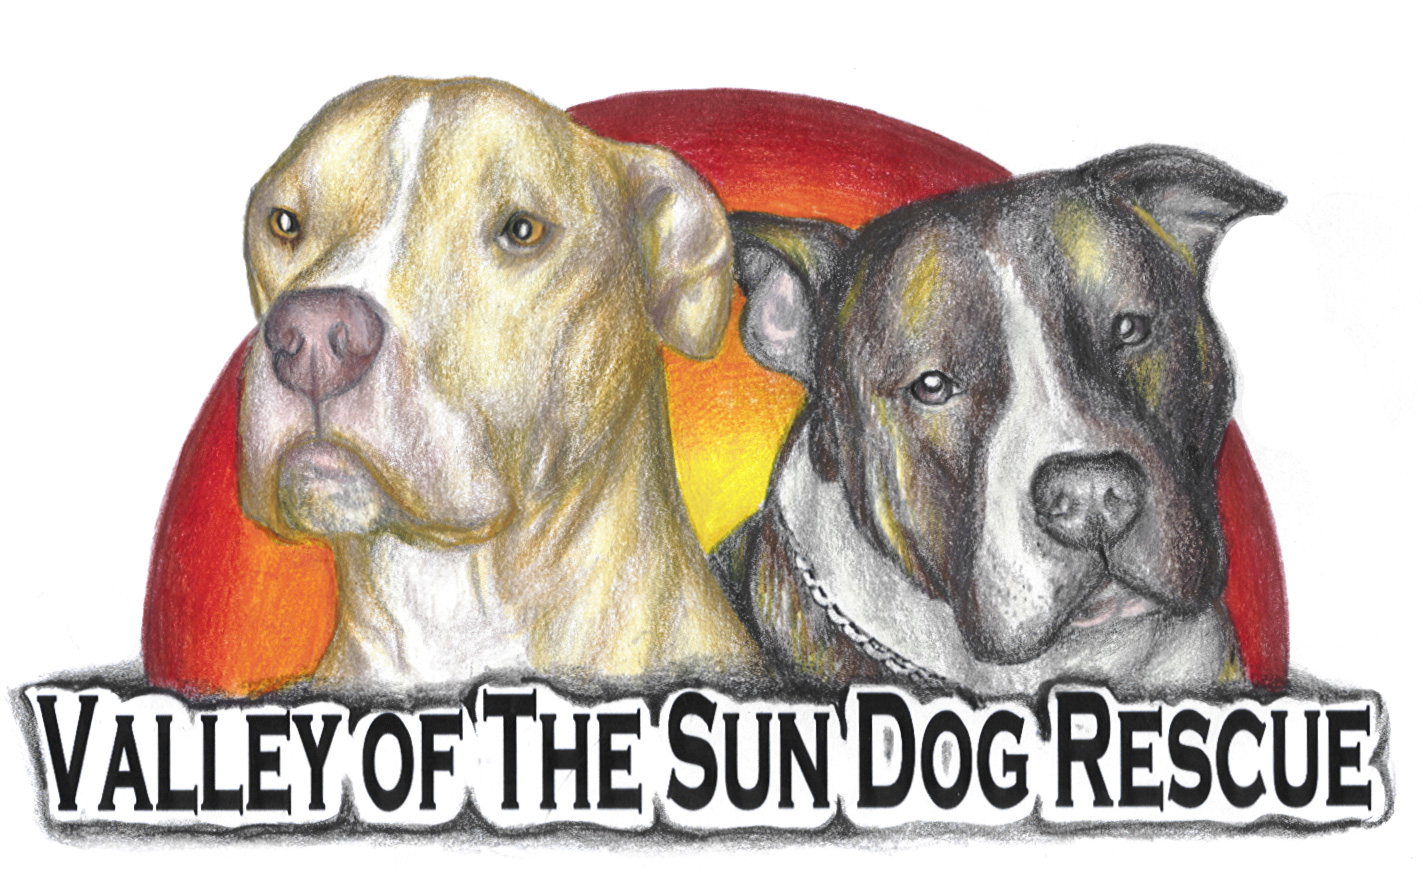 Valley of the Sun Dog Rescue